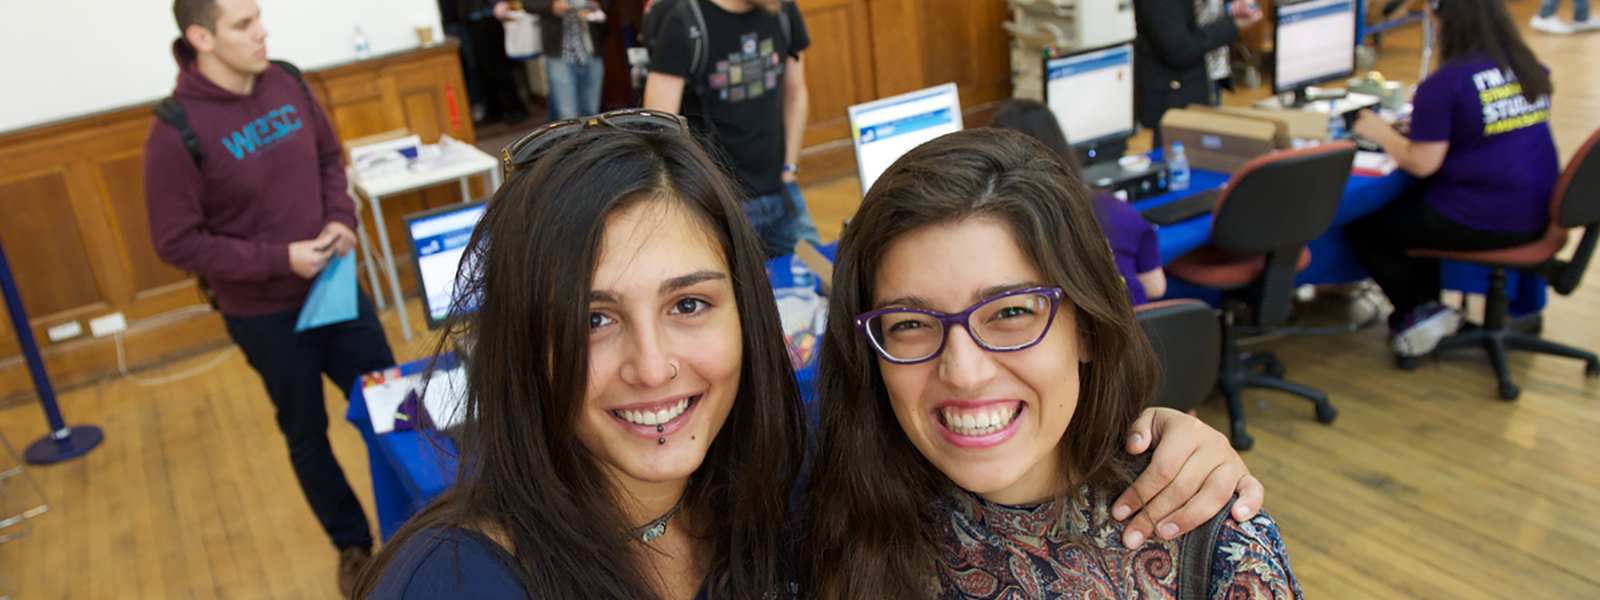 Two students at Registration during Freshers' Week